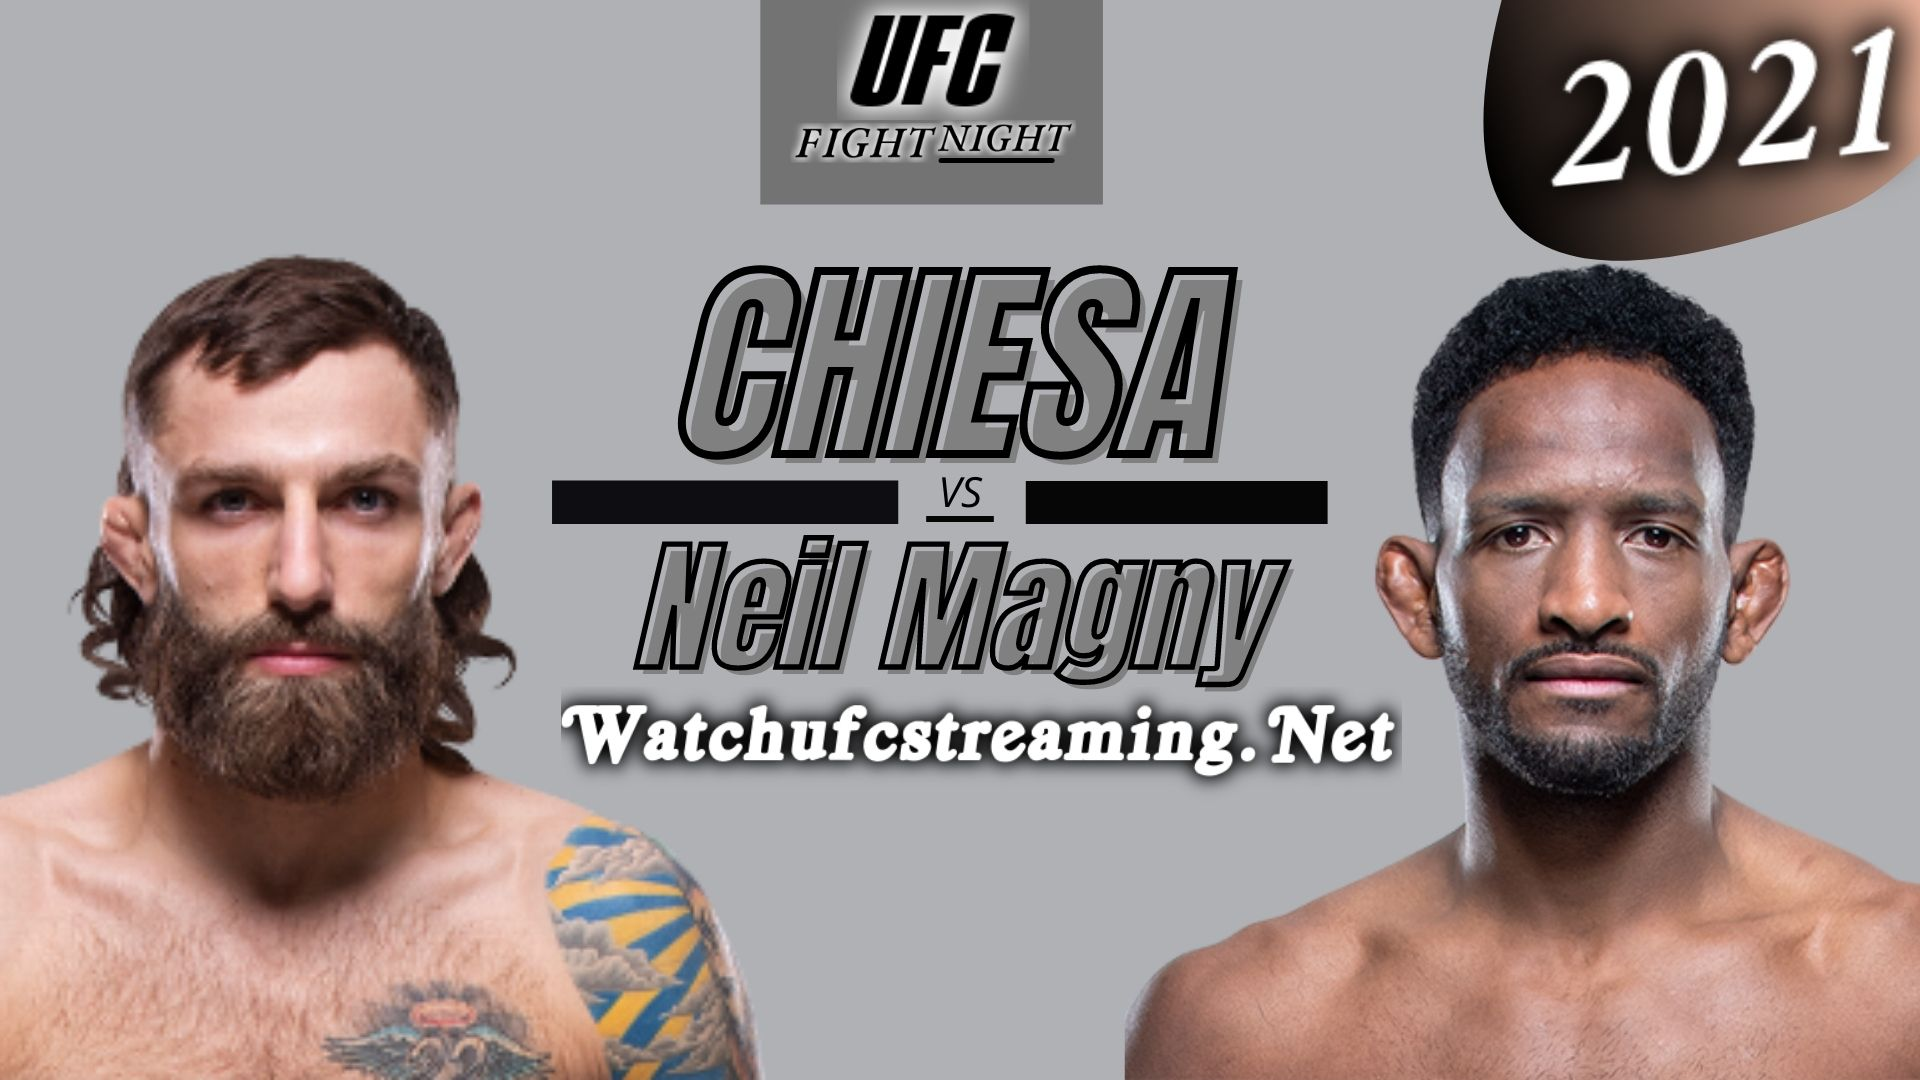 UFC Fight Night | Michael Chiesa Vs Neil Magny - Highlights 2021